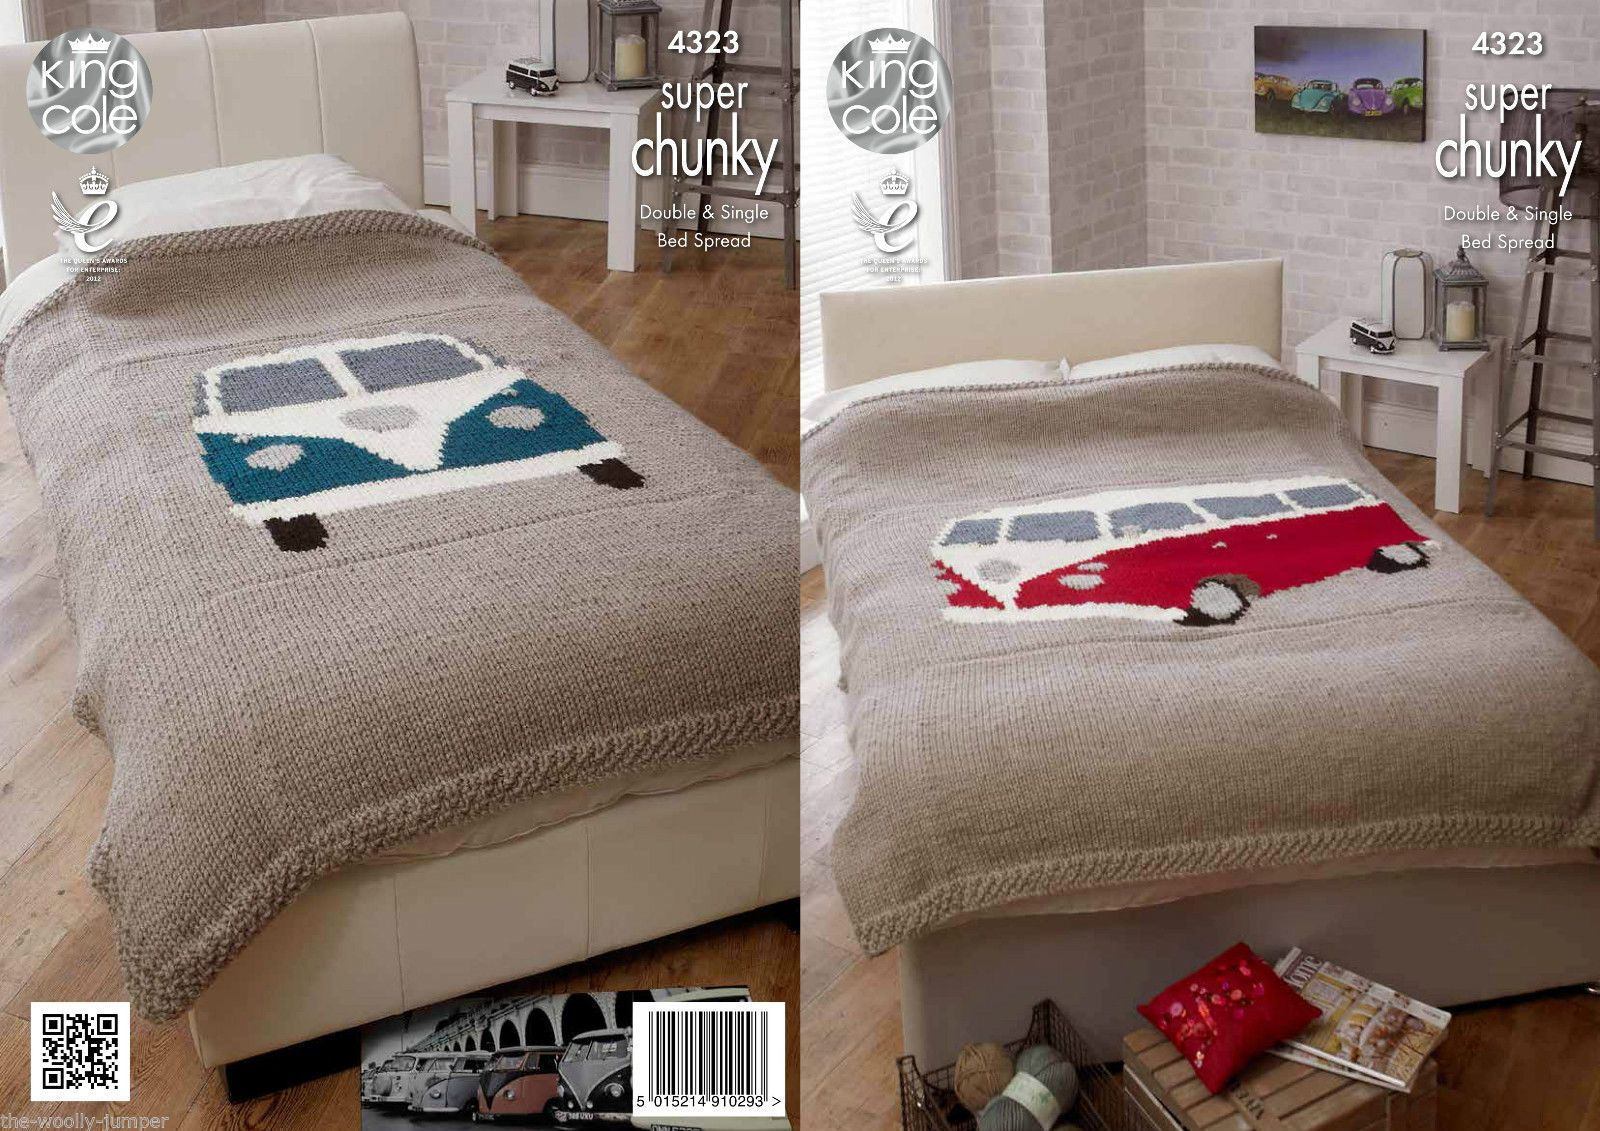 Knitting Patterns For Bed Throws : 4323 - KING COLE VALUE SUPER CHUNKY BED THROW KNITTING PATTERN - SINGLE &...